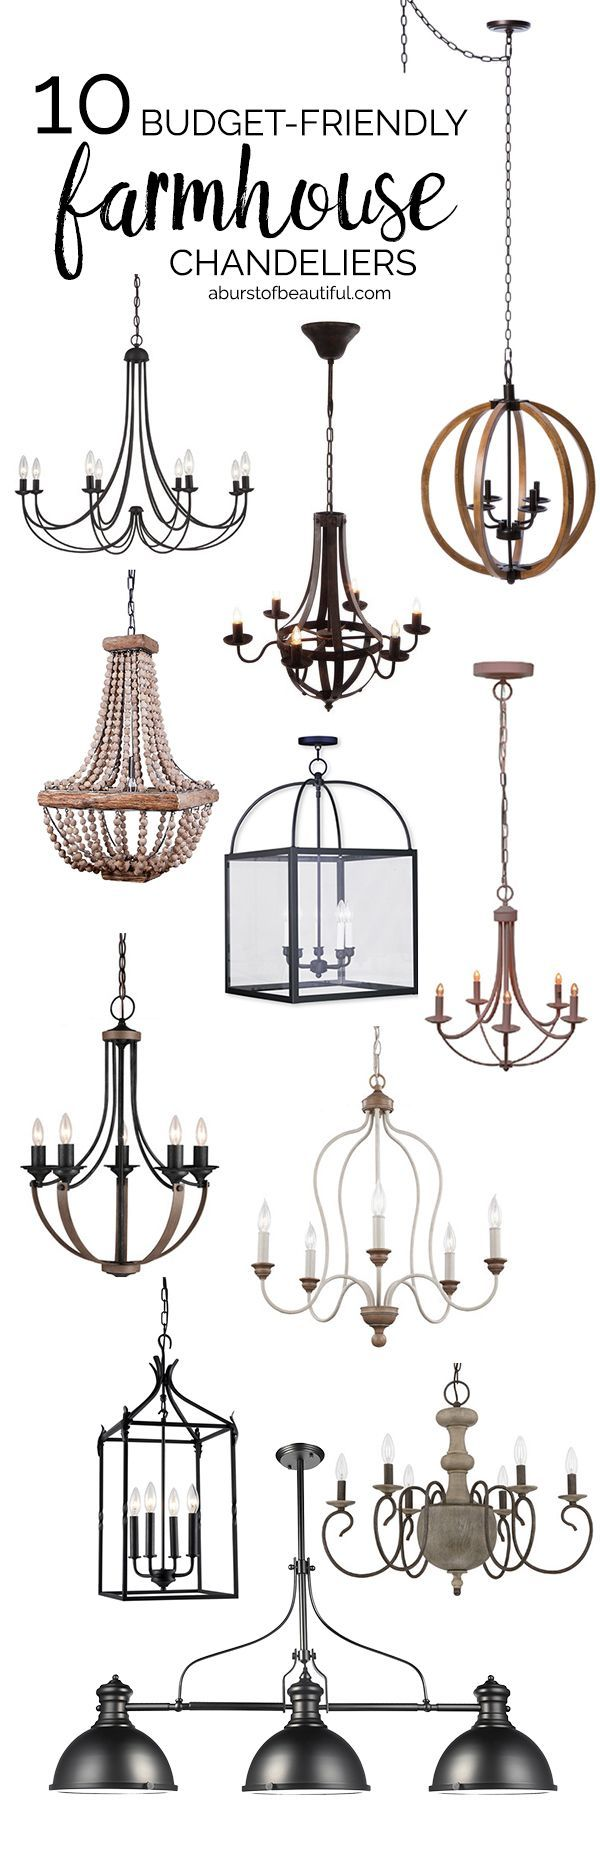 Country Lighting Fixtures For Home. Budget Friendly Farmhouse Chandeliers  Country Lighting Fixtures For Home